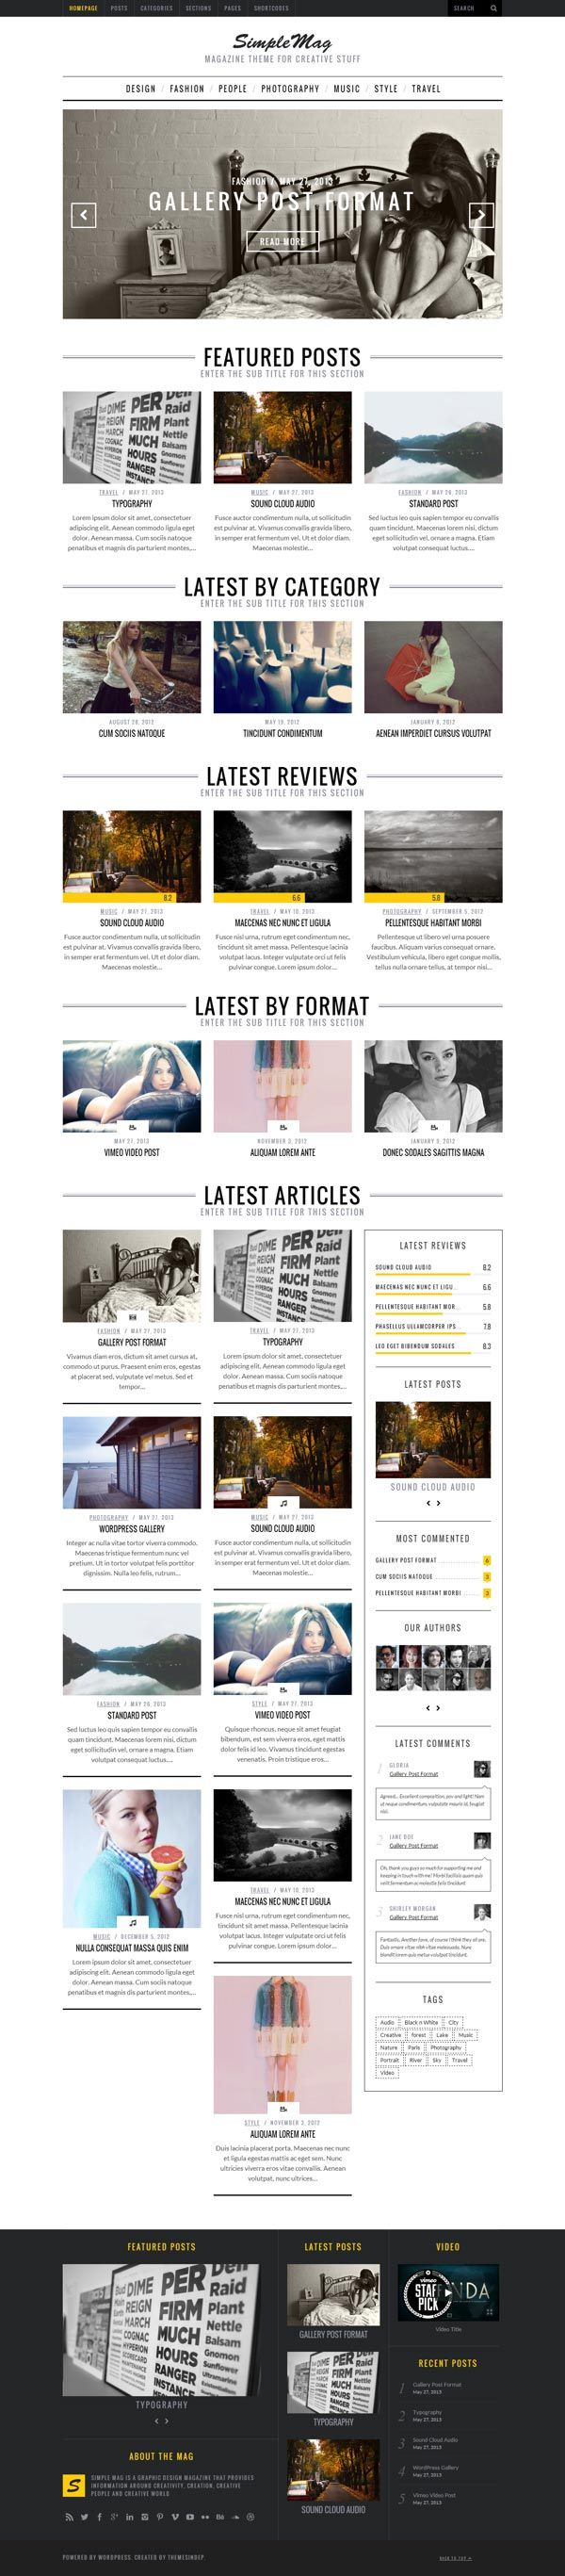 http://ajiboye.digimkts.com   I need my business online and offline.   Worth taking a minute to review.  Simple Mag - Blog Wordpress Theme for Online Magazines